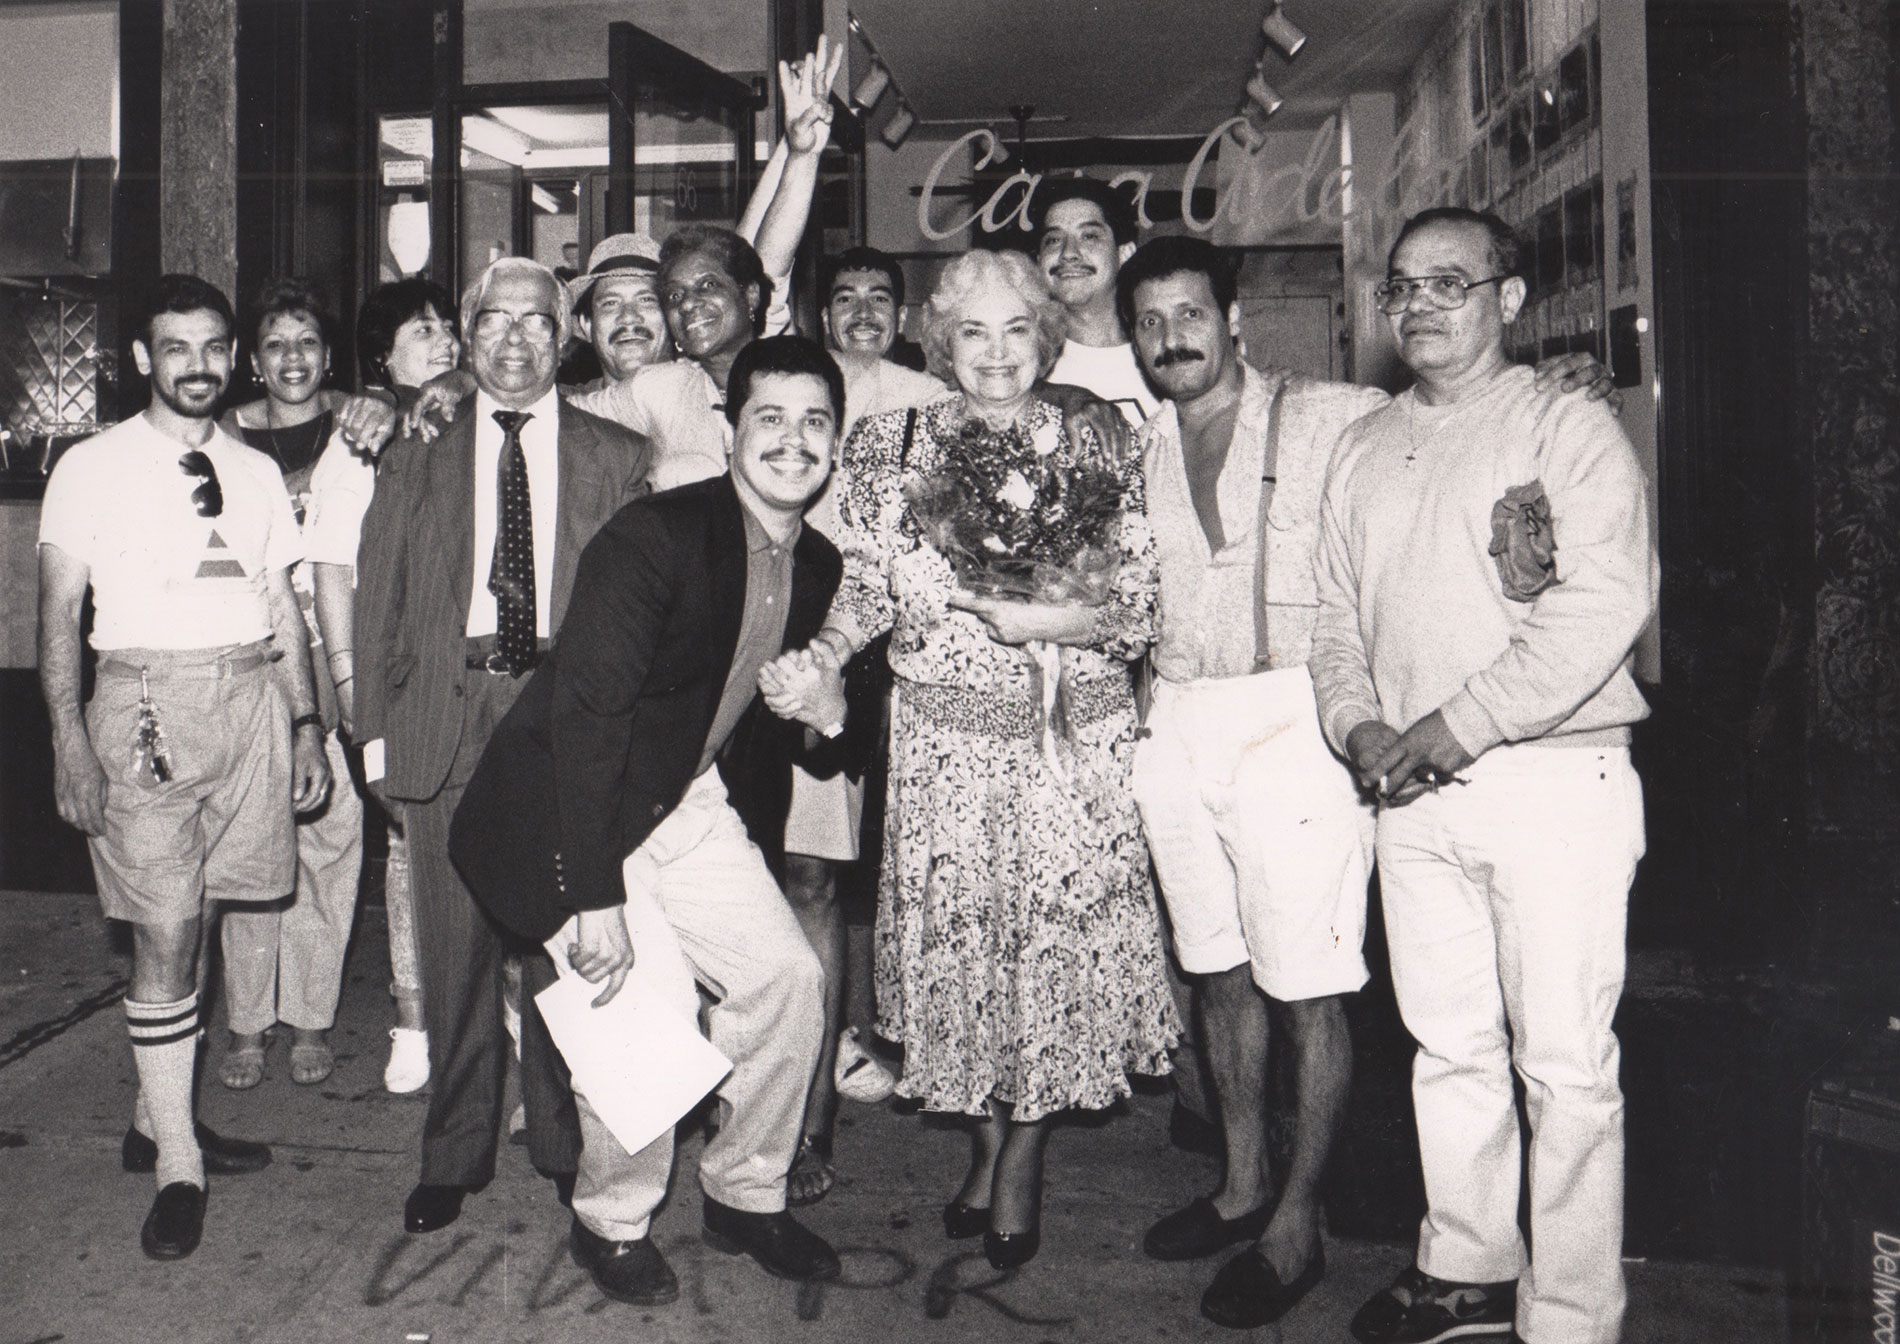 Lolita Lebrón at Casa Adela. Muralist Freddy Hernandez ( La Plaza Cultural Mural ) is at right—with mustache and wearing shorts.   Photo © Marlis Momber